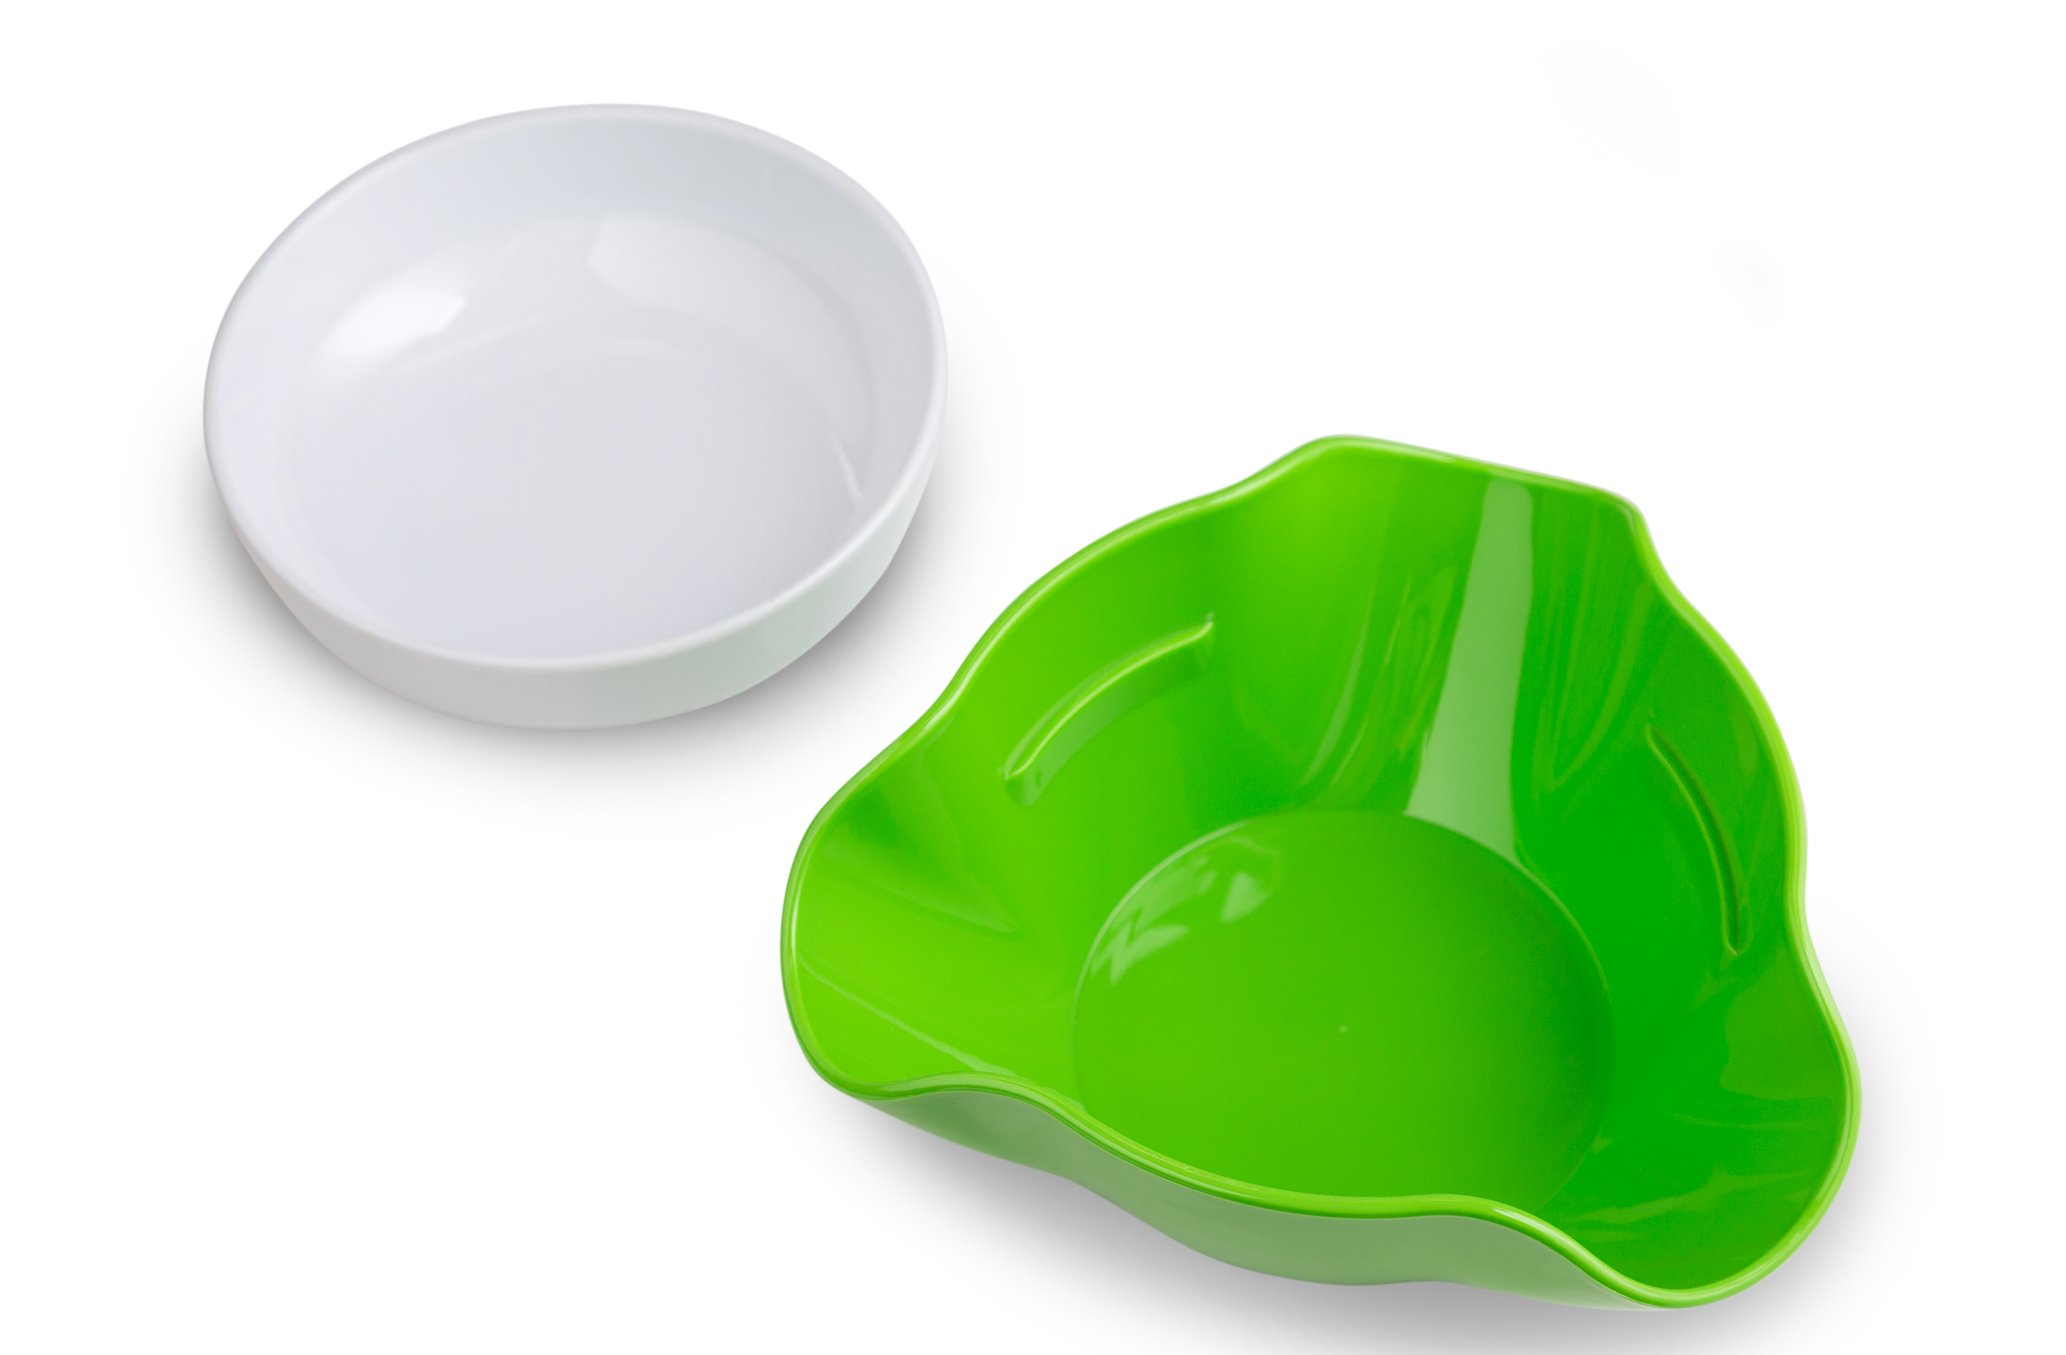 Pistachio Bowl with Shell Storage - Double Dish Snack Serving Bowl - for Pistachios, Peanuts, Edamame, Cherries, Nuts, Fruits, Candies - by Kitchen Winners by Kitchen Winners (Image #1)